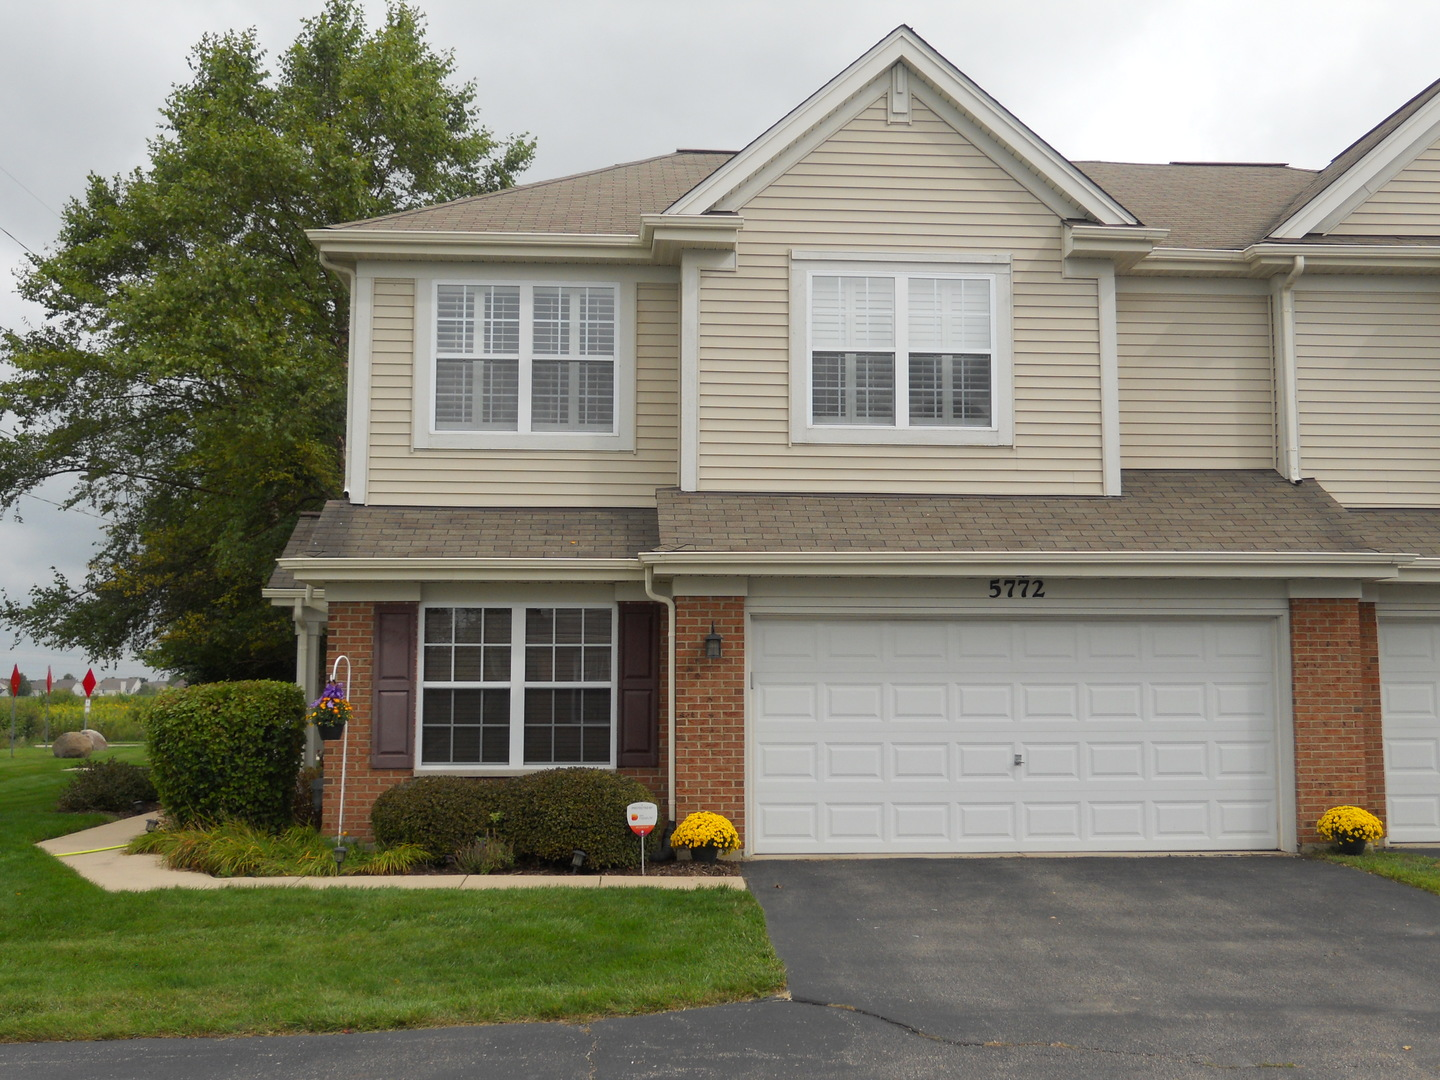 Photo for 5772 Wildspring Drive, Lake in the Hills, IL 60156 (MLS # 10510152)